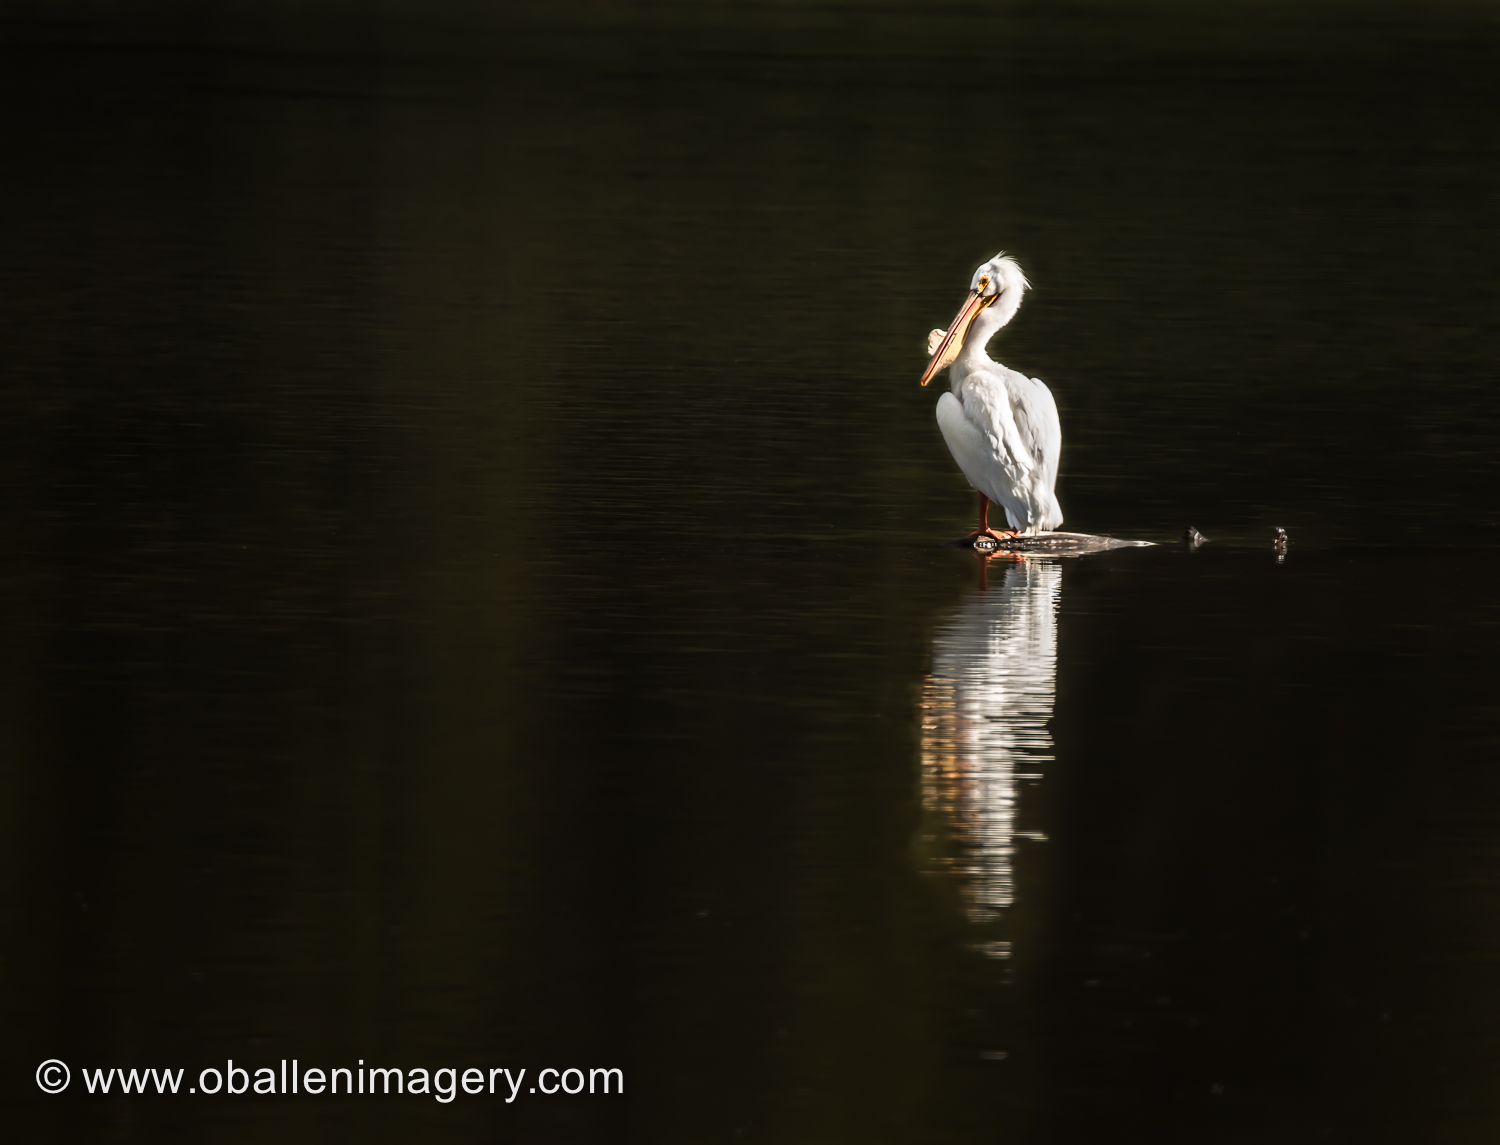 We had the opportunity to photograph this pelican. We were able to enjoy watching him and another companion.